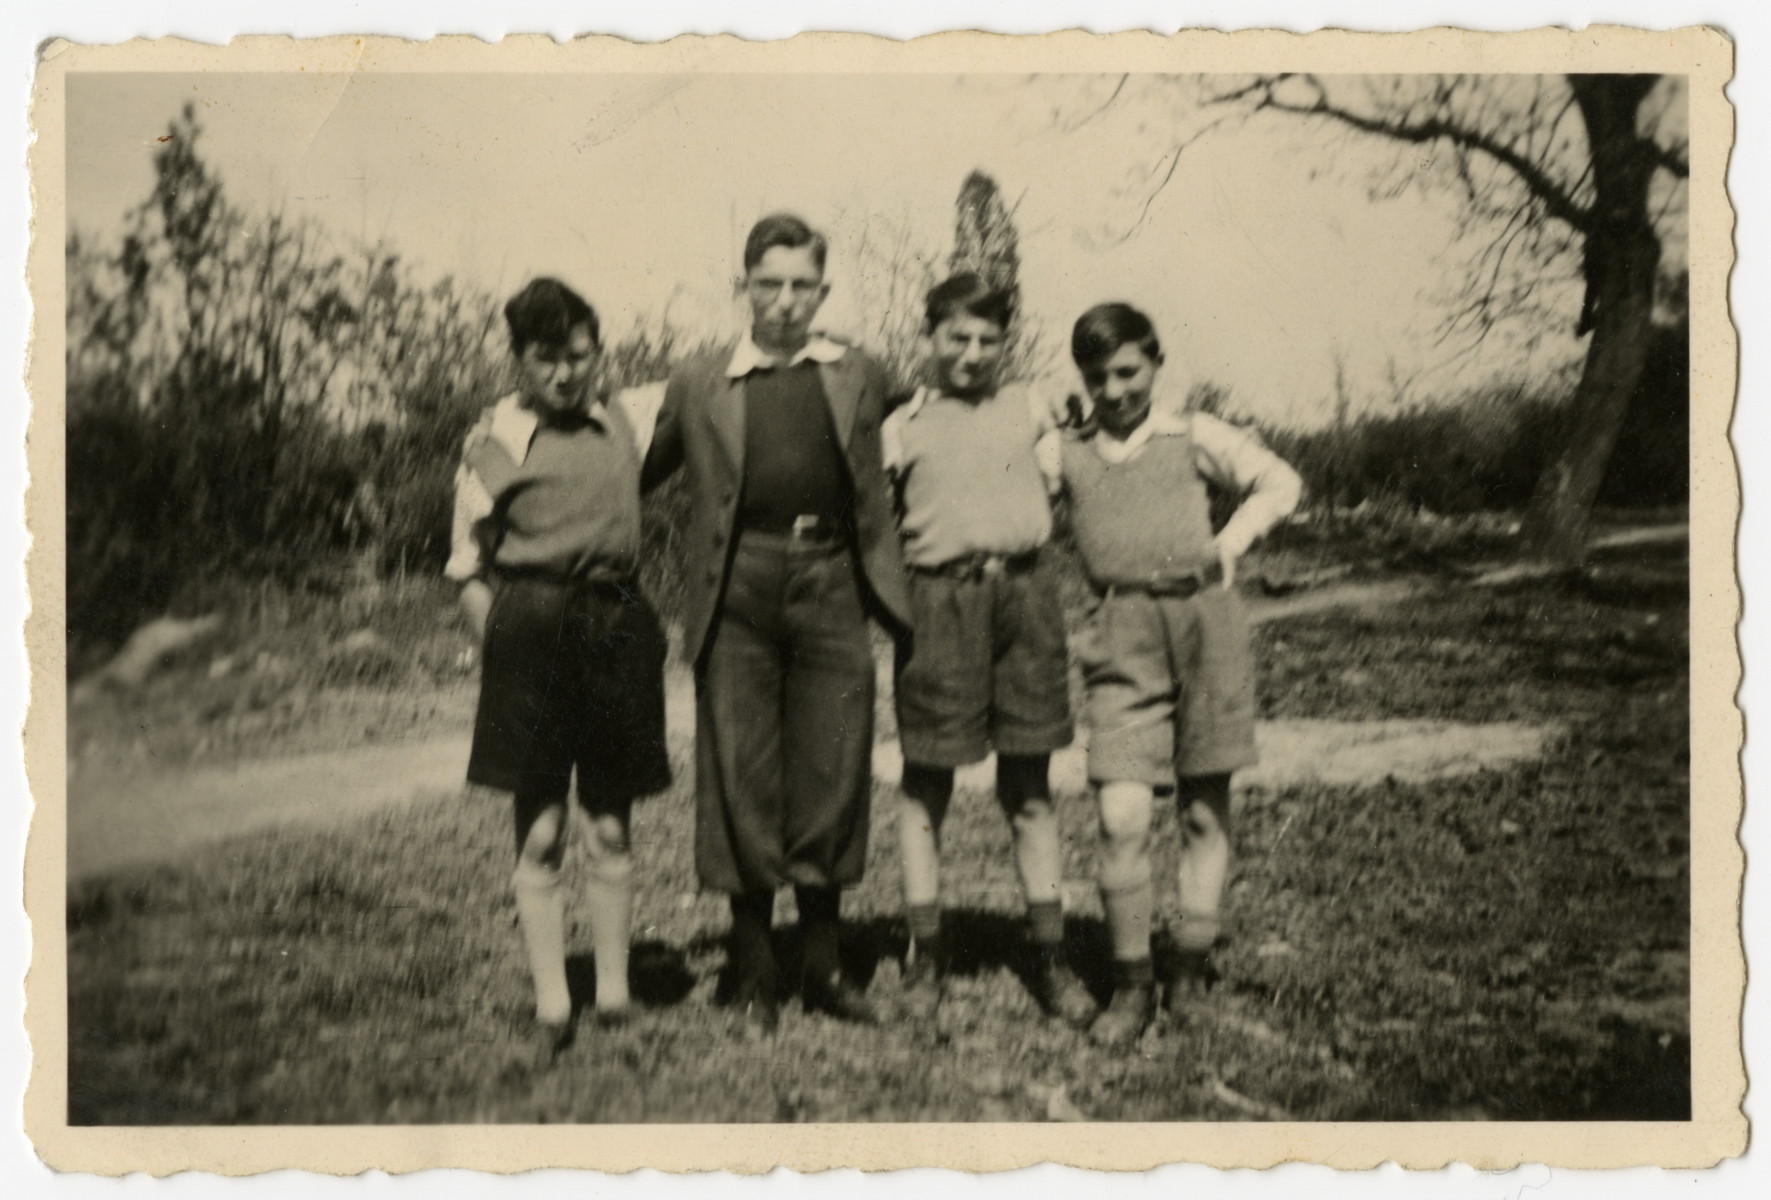 Group portrait of four Jewish orphans outside Home de la-Bas in Aische-en-Refail.  Pictured are Leon Pec, George Sylin, Maurice Sorgenstein and Charles Rojer.